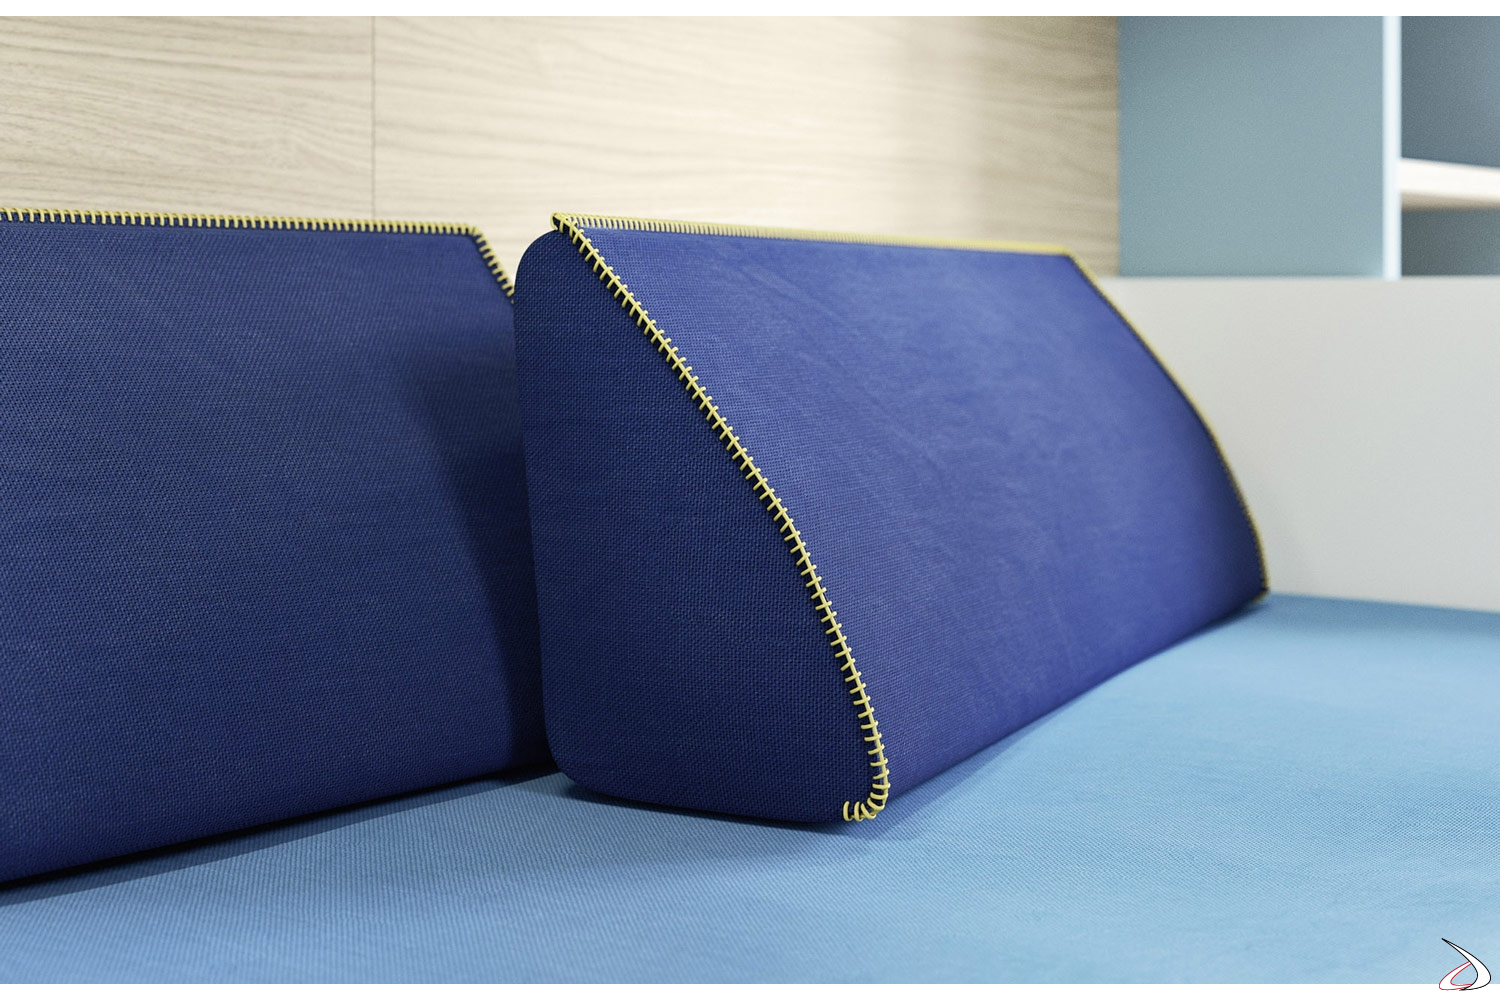 Cuscini Schienale Divano Letto.Bug Sofa Bed For Boys Room Toparredi Arredo Design Online